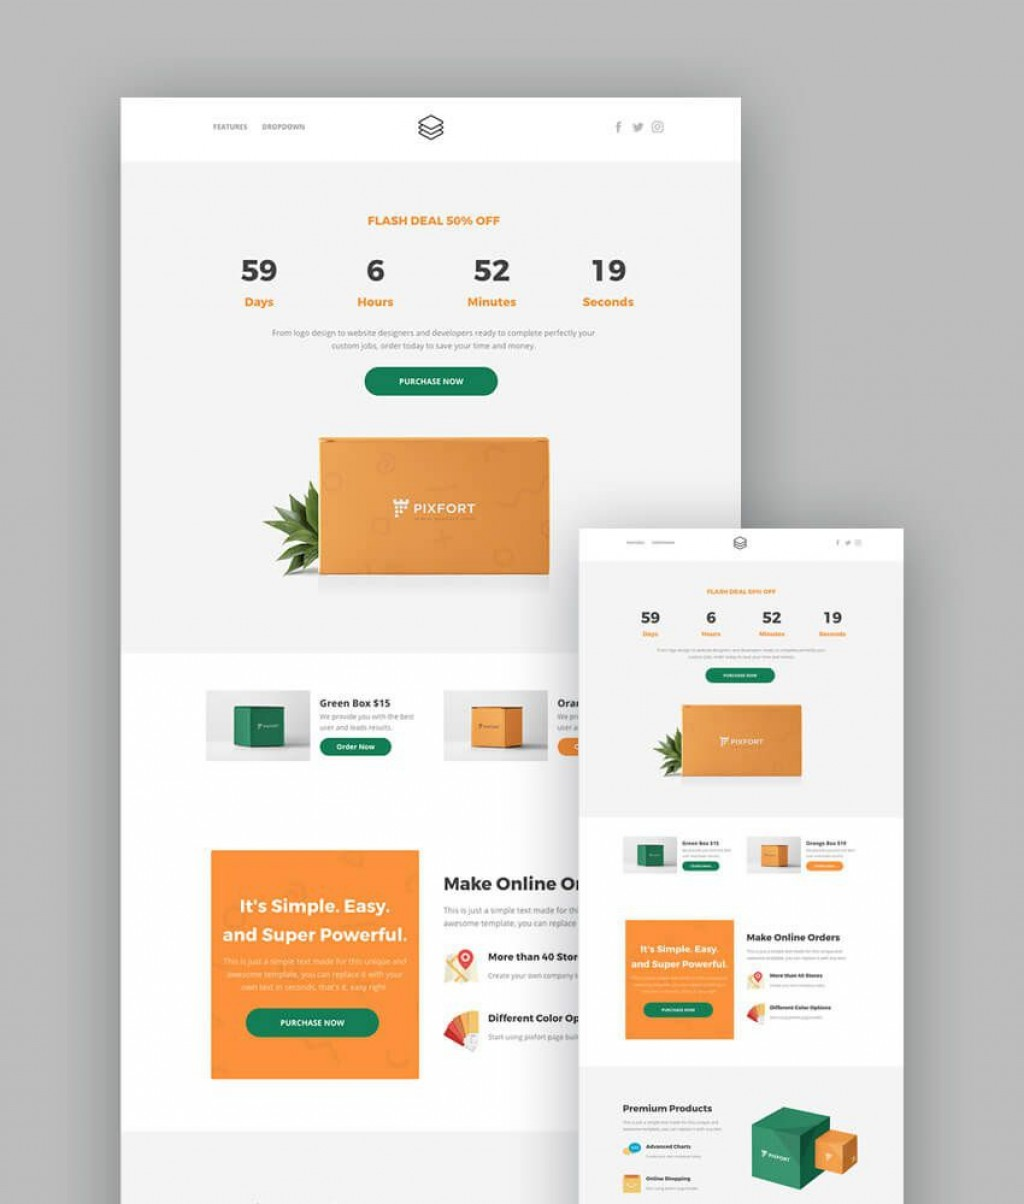 005 Simple Responsive Landing Page Template High Definition  Templates Html5 Free Download Wordpres HtmlLarge